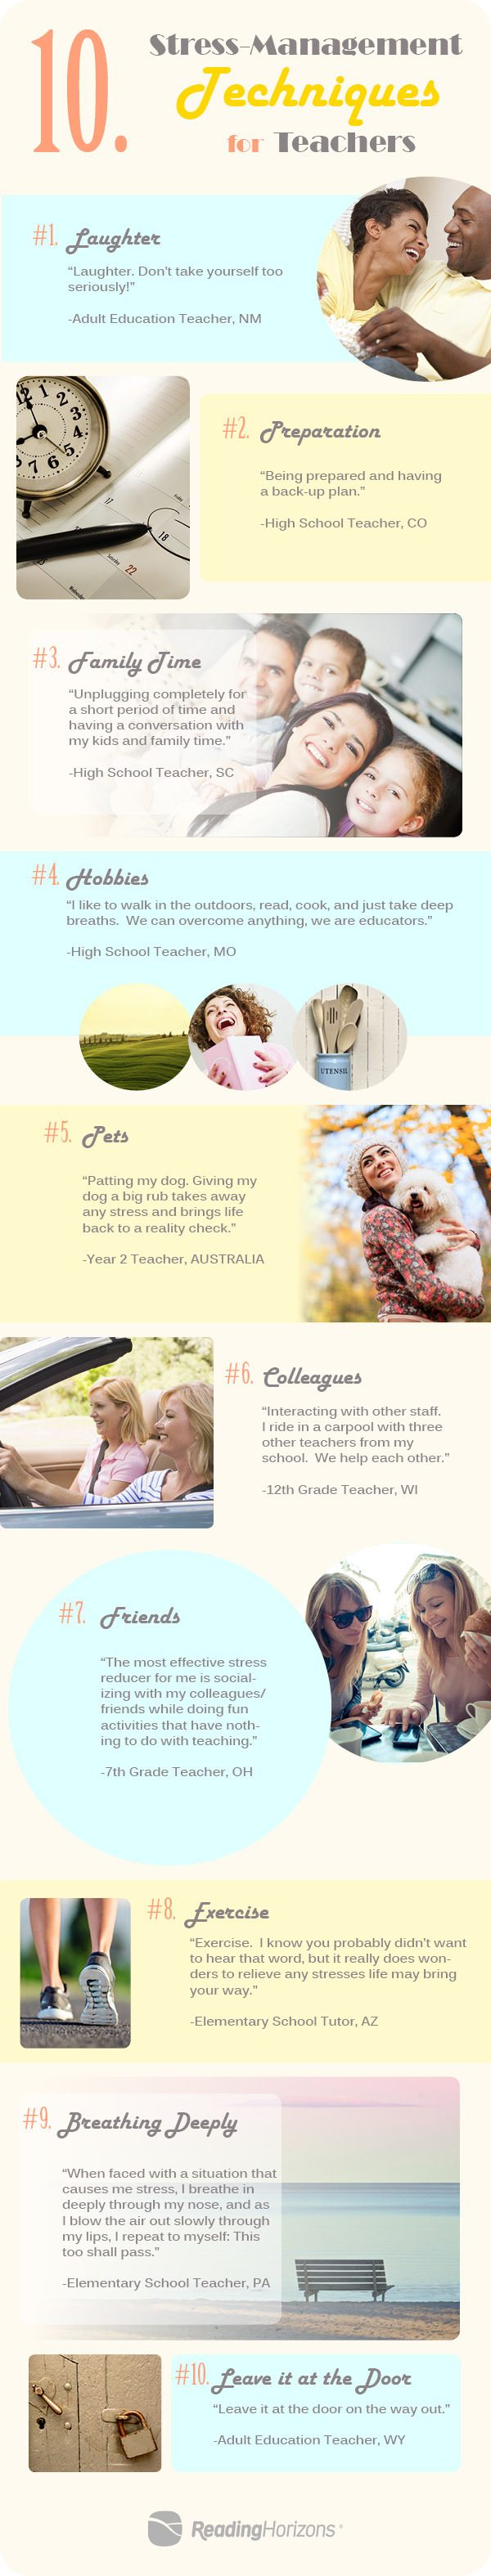 10 Stress-Management Techniques for Teachers Infographic